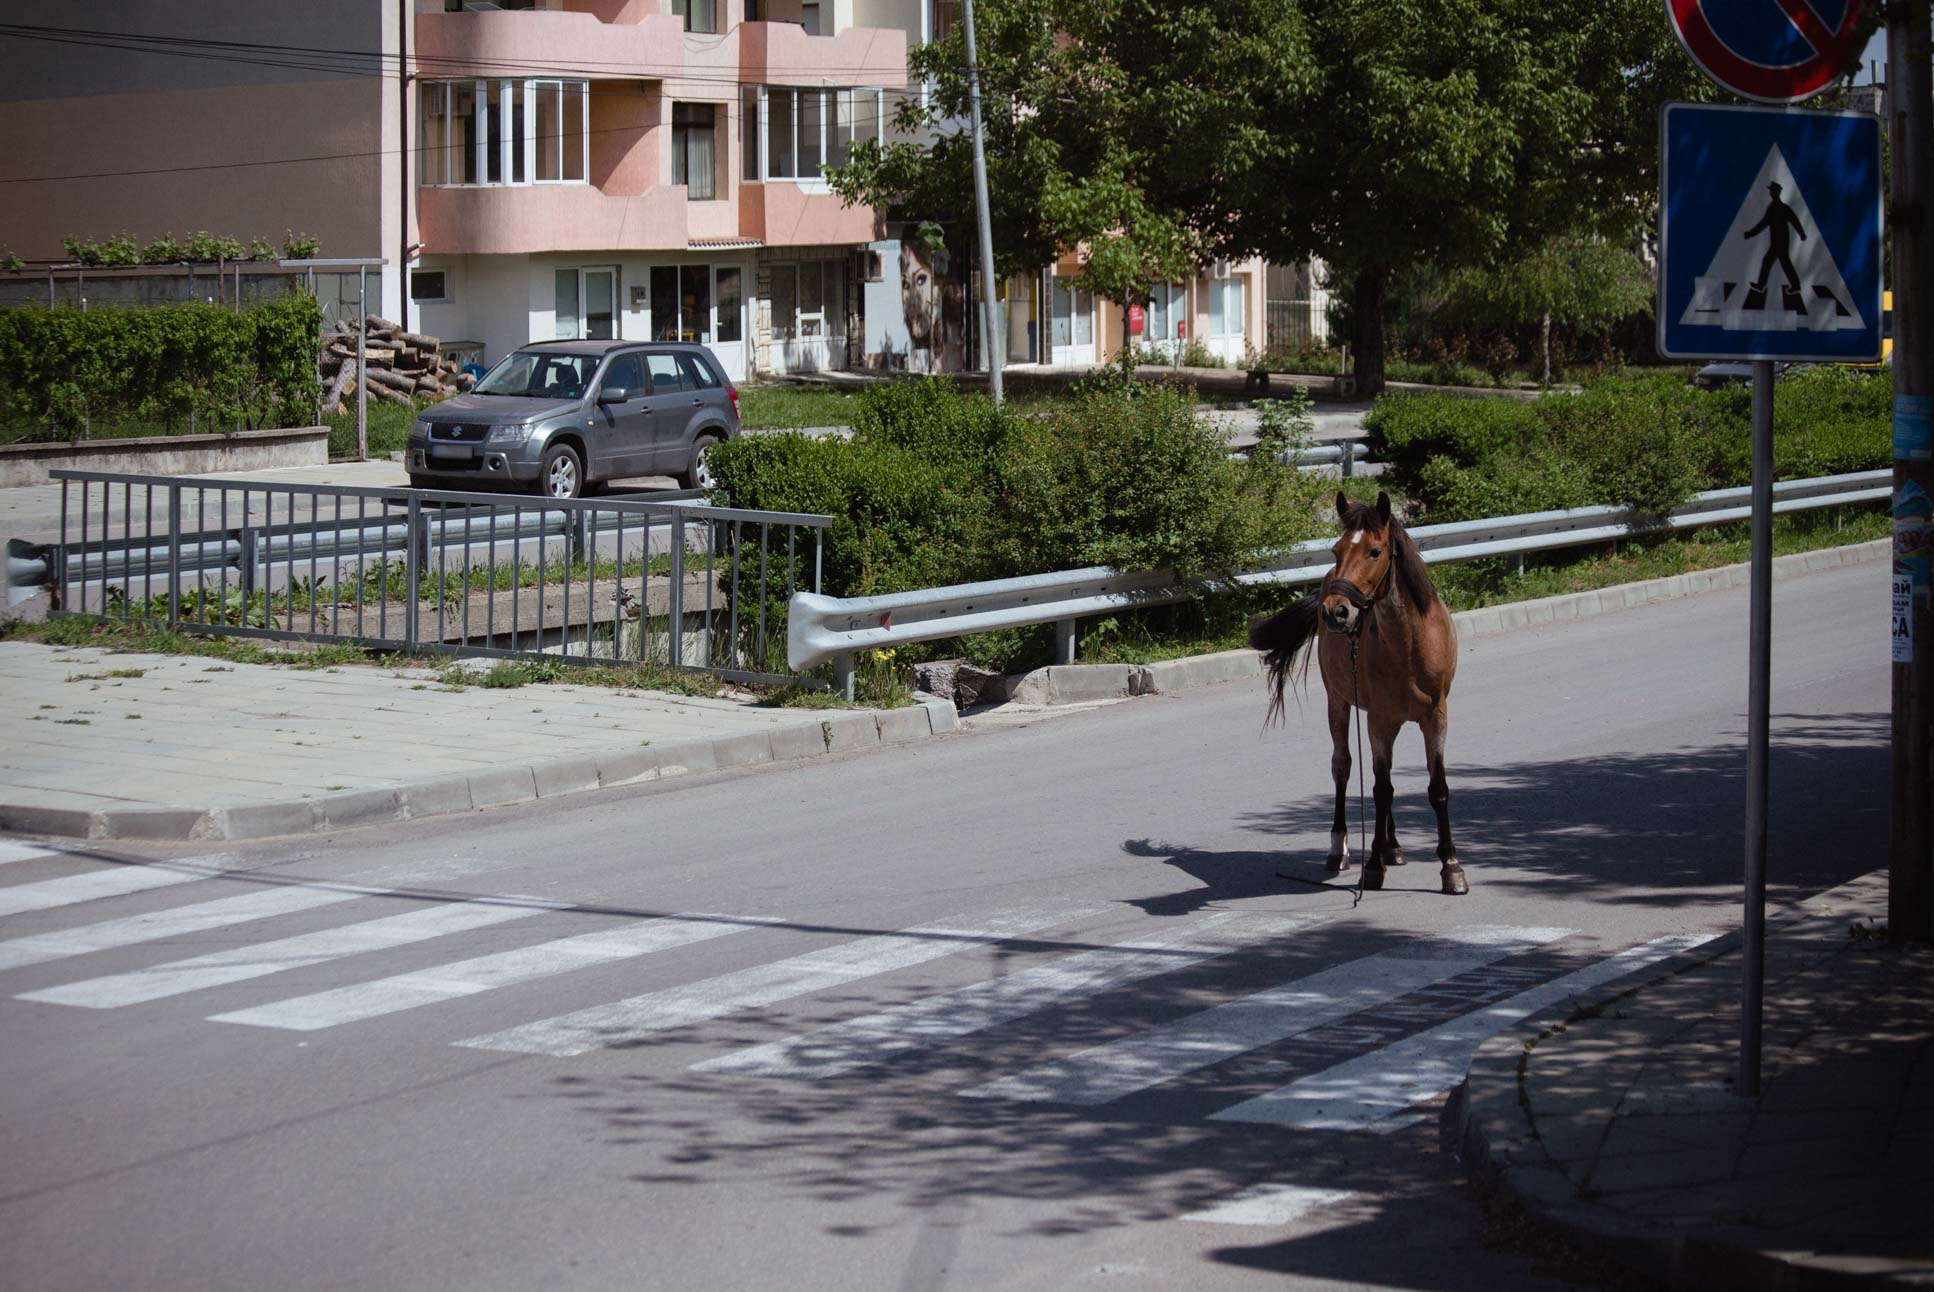 A horse doing its horse things on the main road.